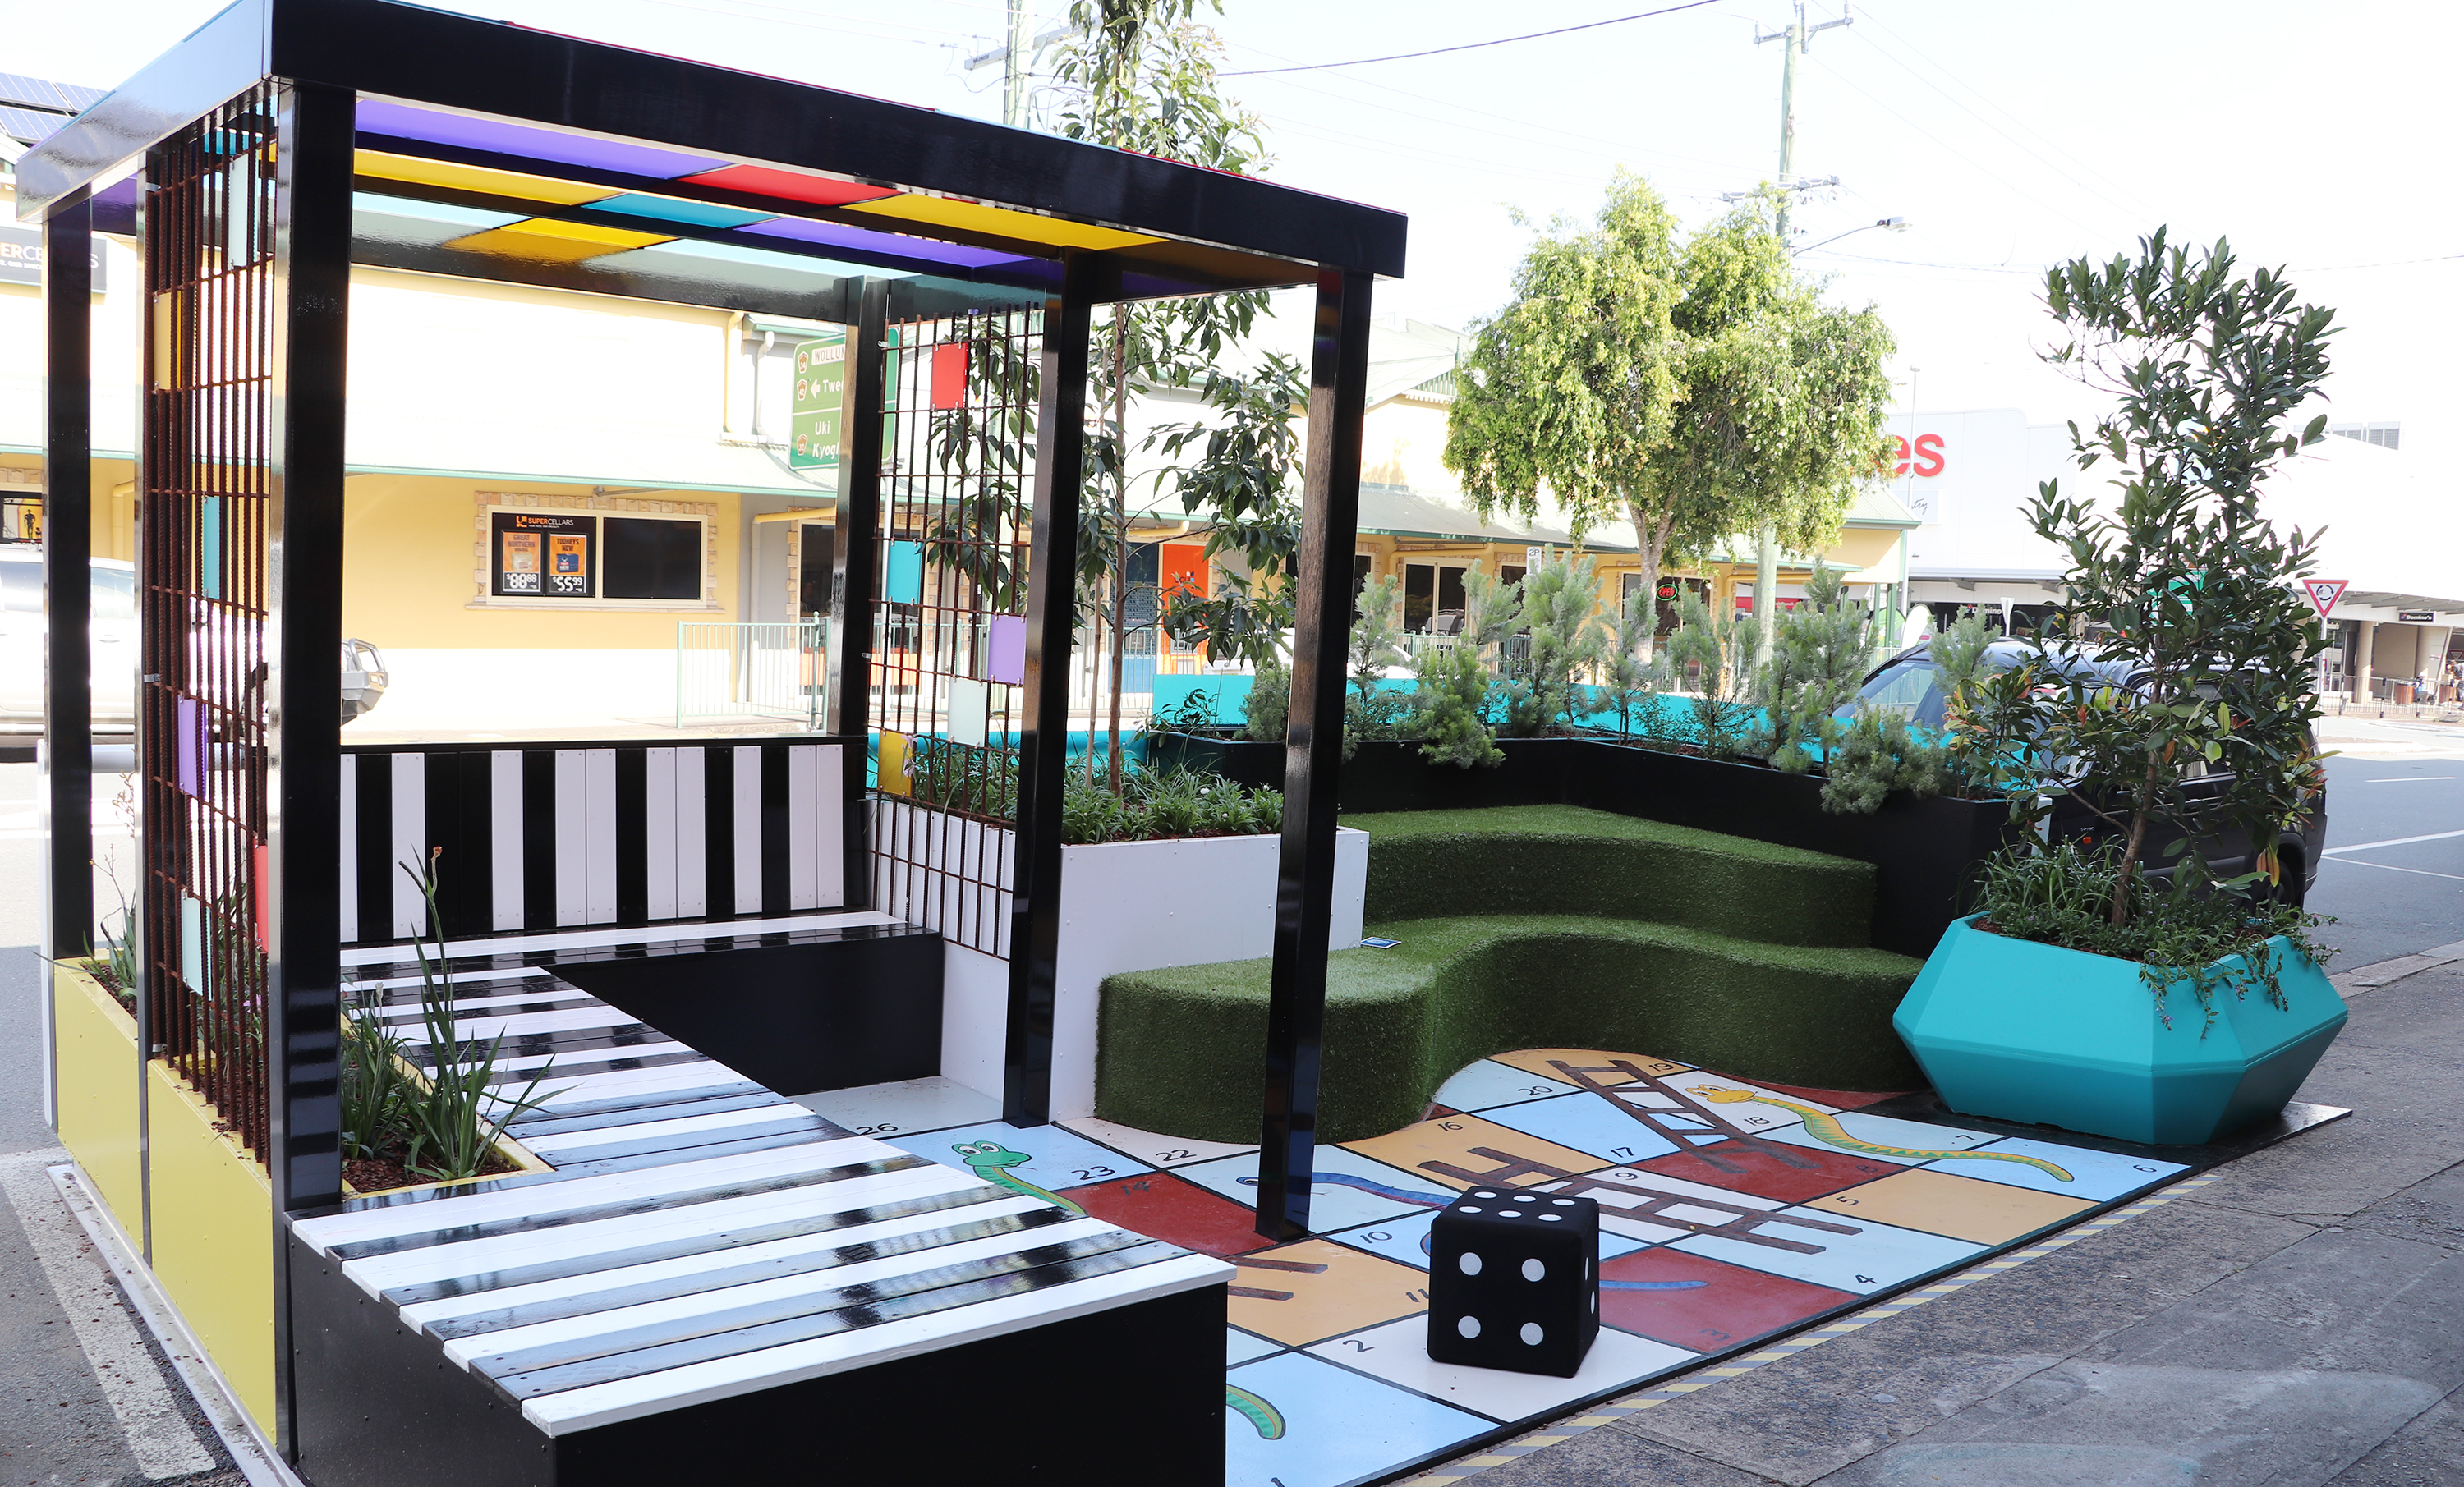 Photo of the parklet at Brisbane Street, Murwillumbah.